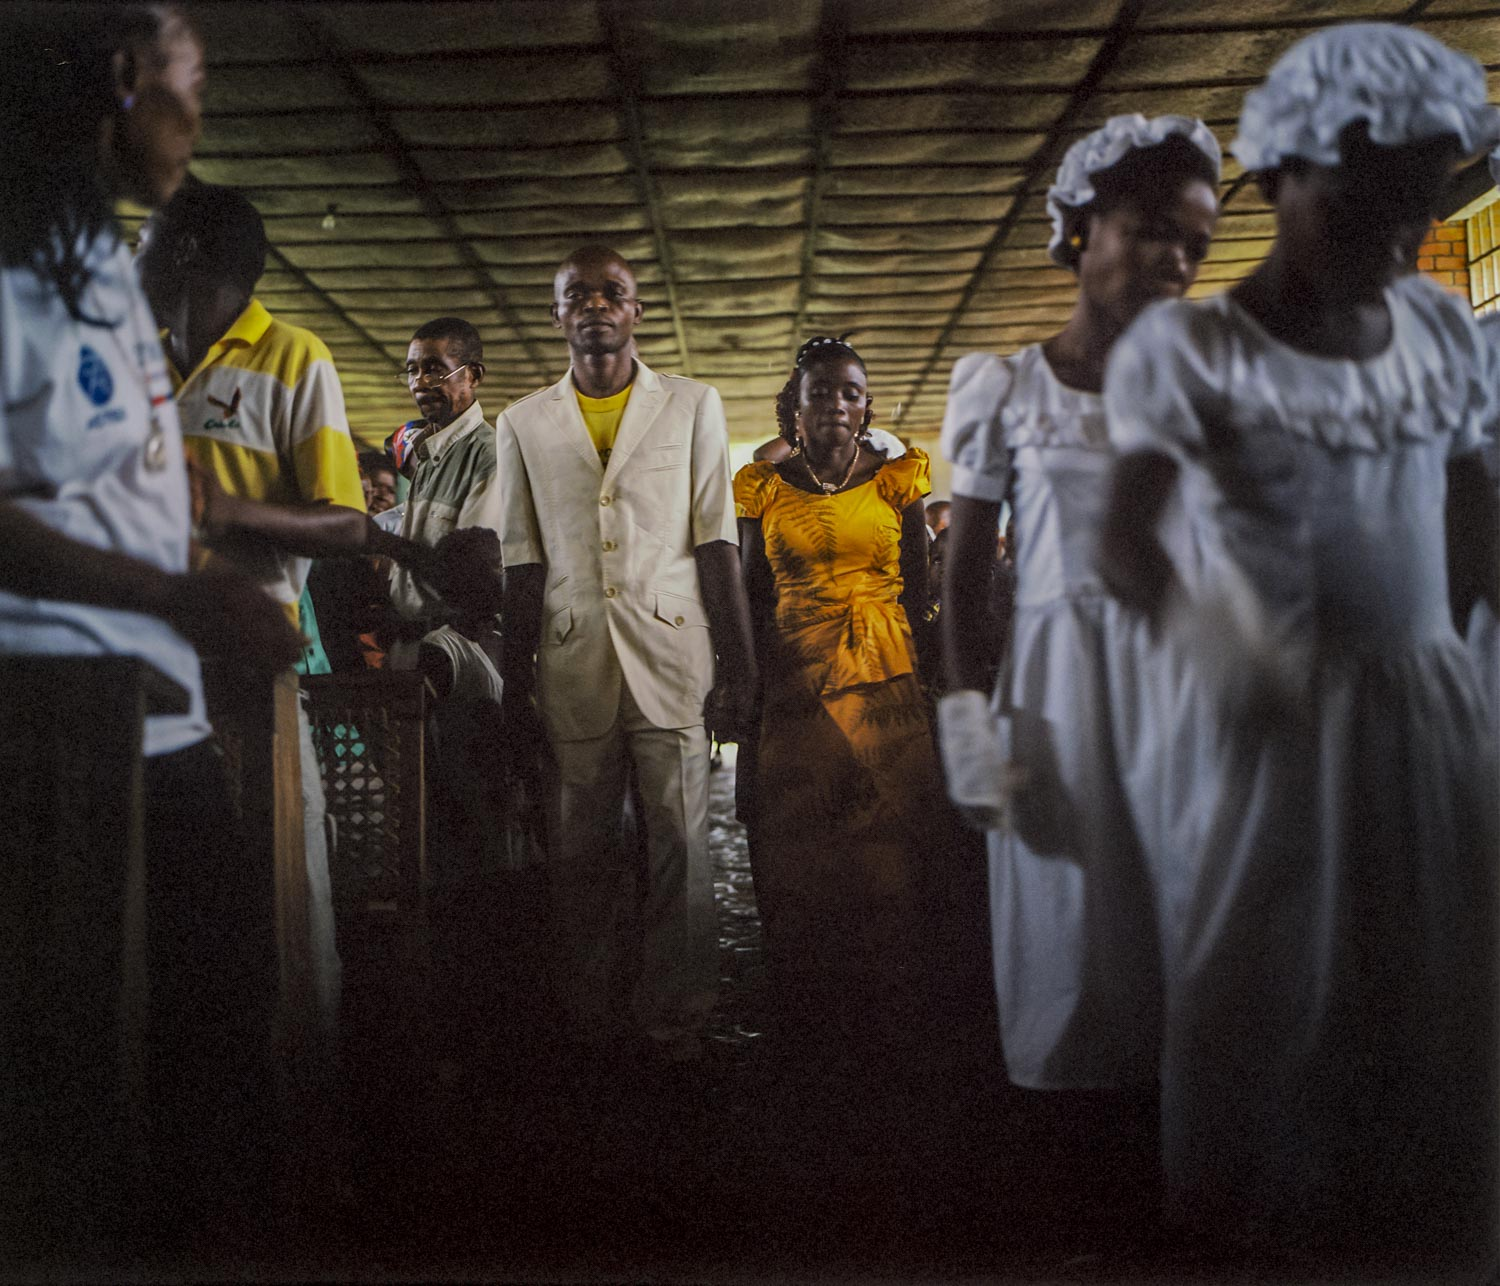 In a Catholic church, a couple walks down the aisle during their marriage ceremony. A normal sight in other parts of the world, in Lulingu, this offers a testament to the sense of relative security felt by villagers.Dec. 29, 2013. Lulingu, South Kivu, Democratic Republic of the Congo.